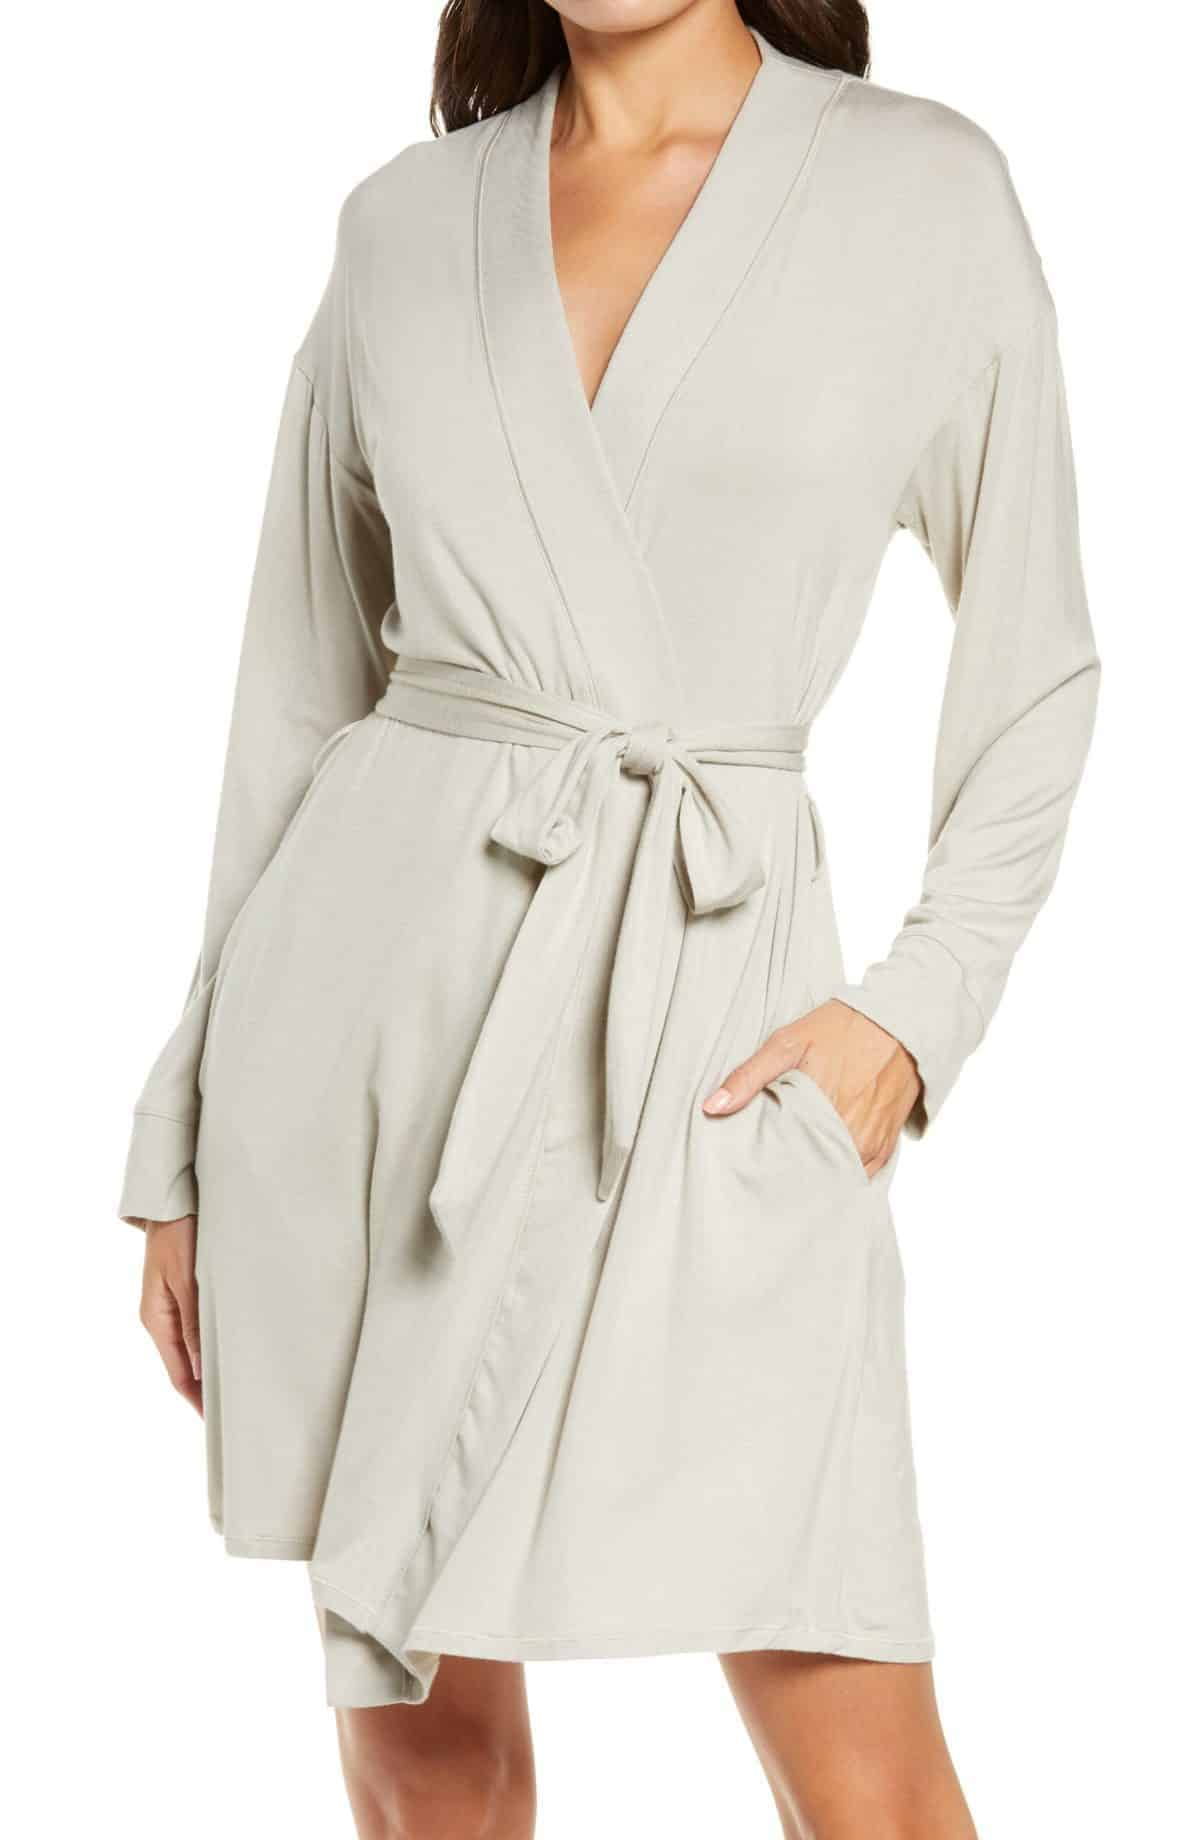 Product shot of a model wearing a soft ivory robe, white background.